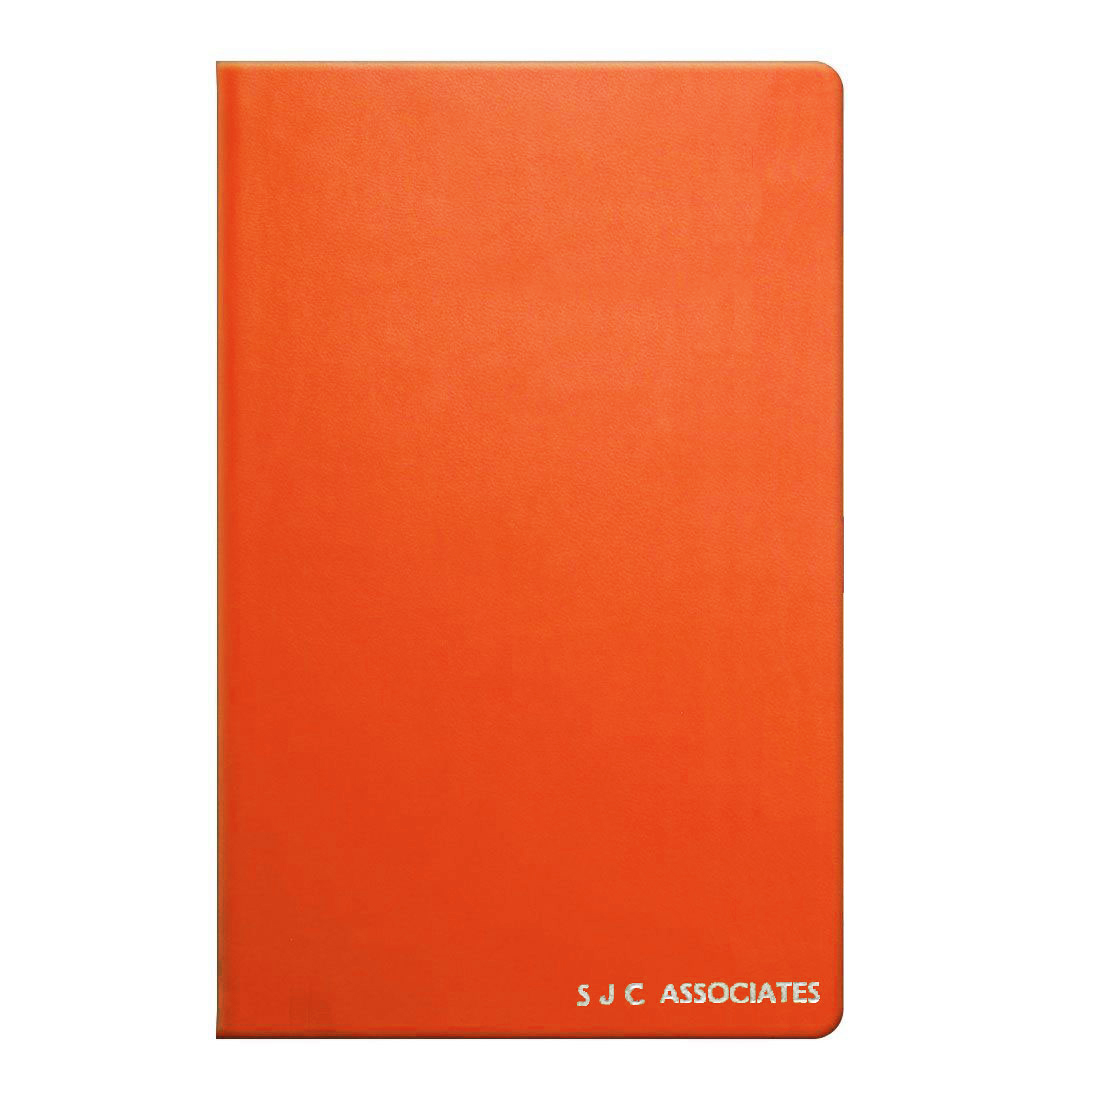 Castelli Notebook Range - Castelli Notebook - Orange